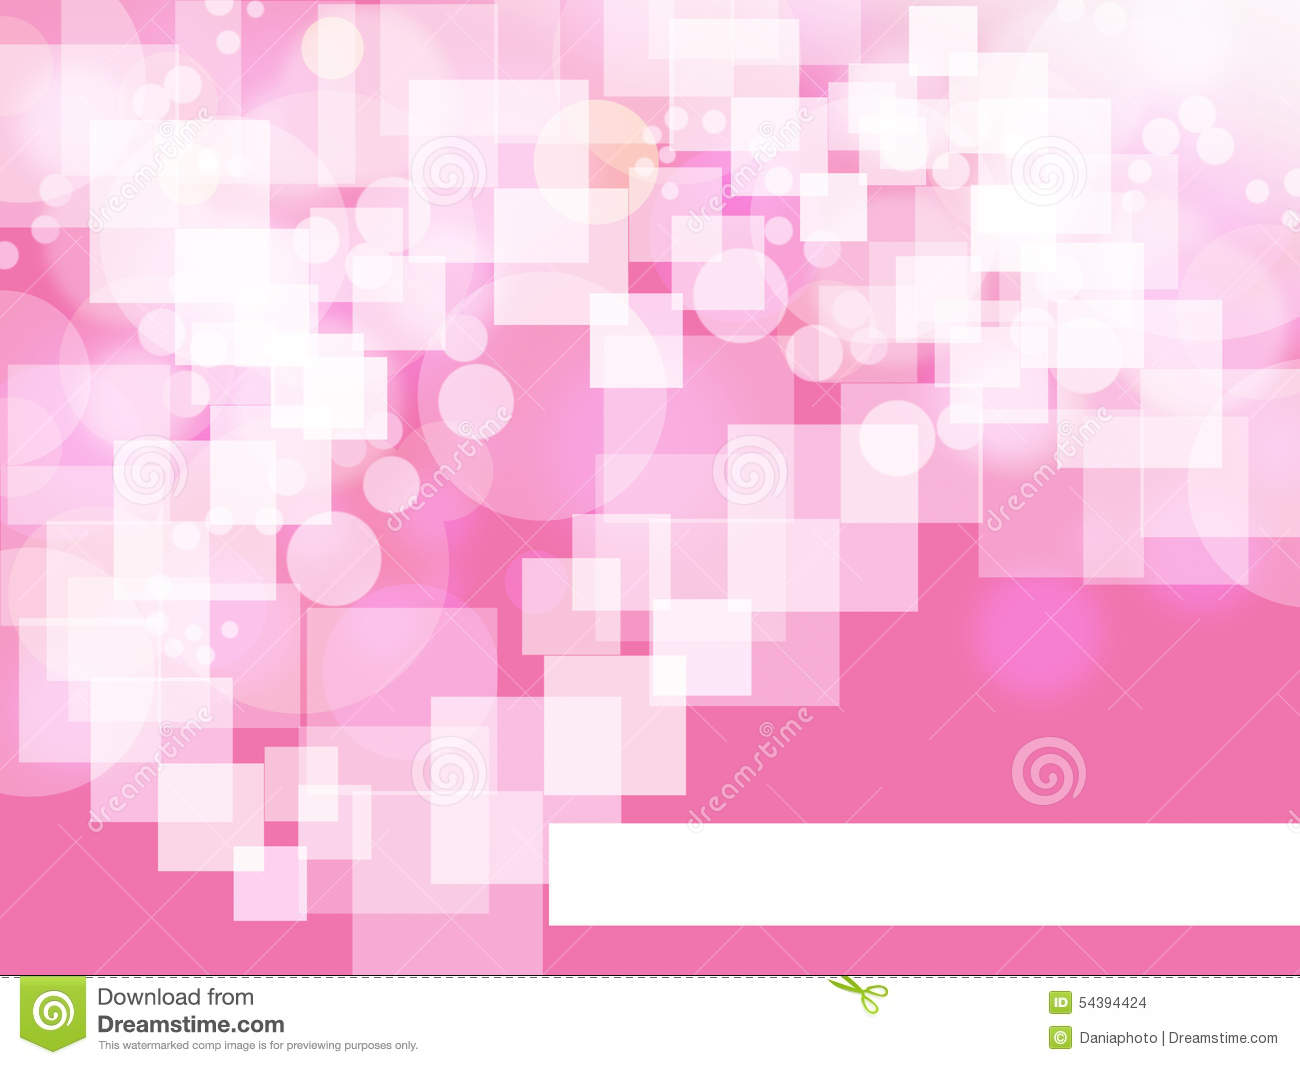 Square on pink background